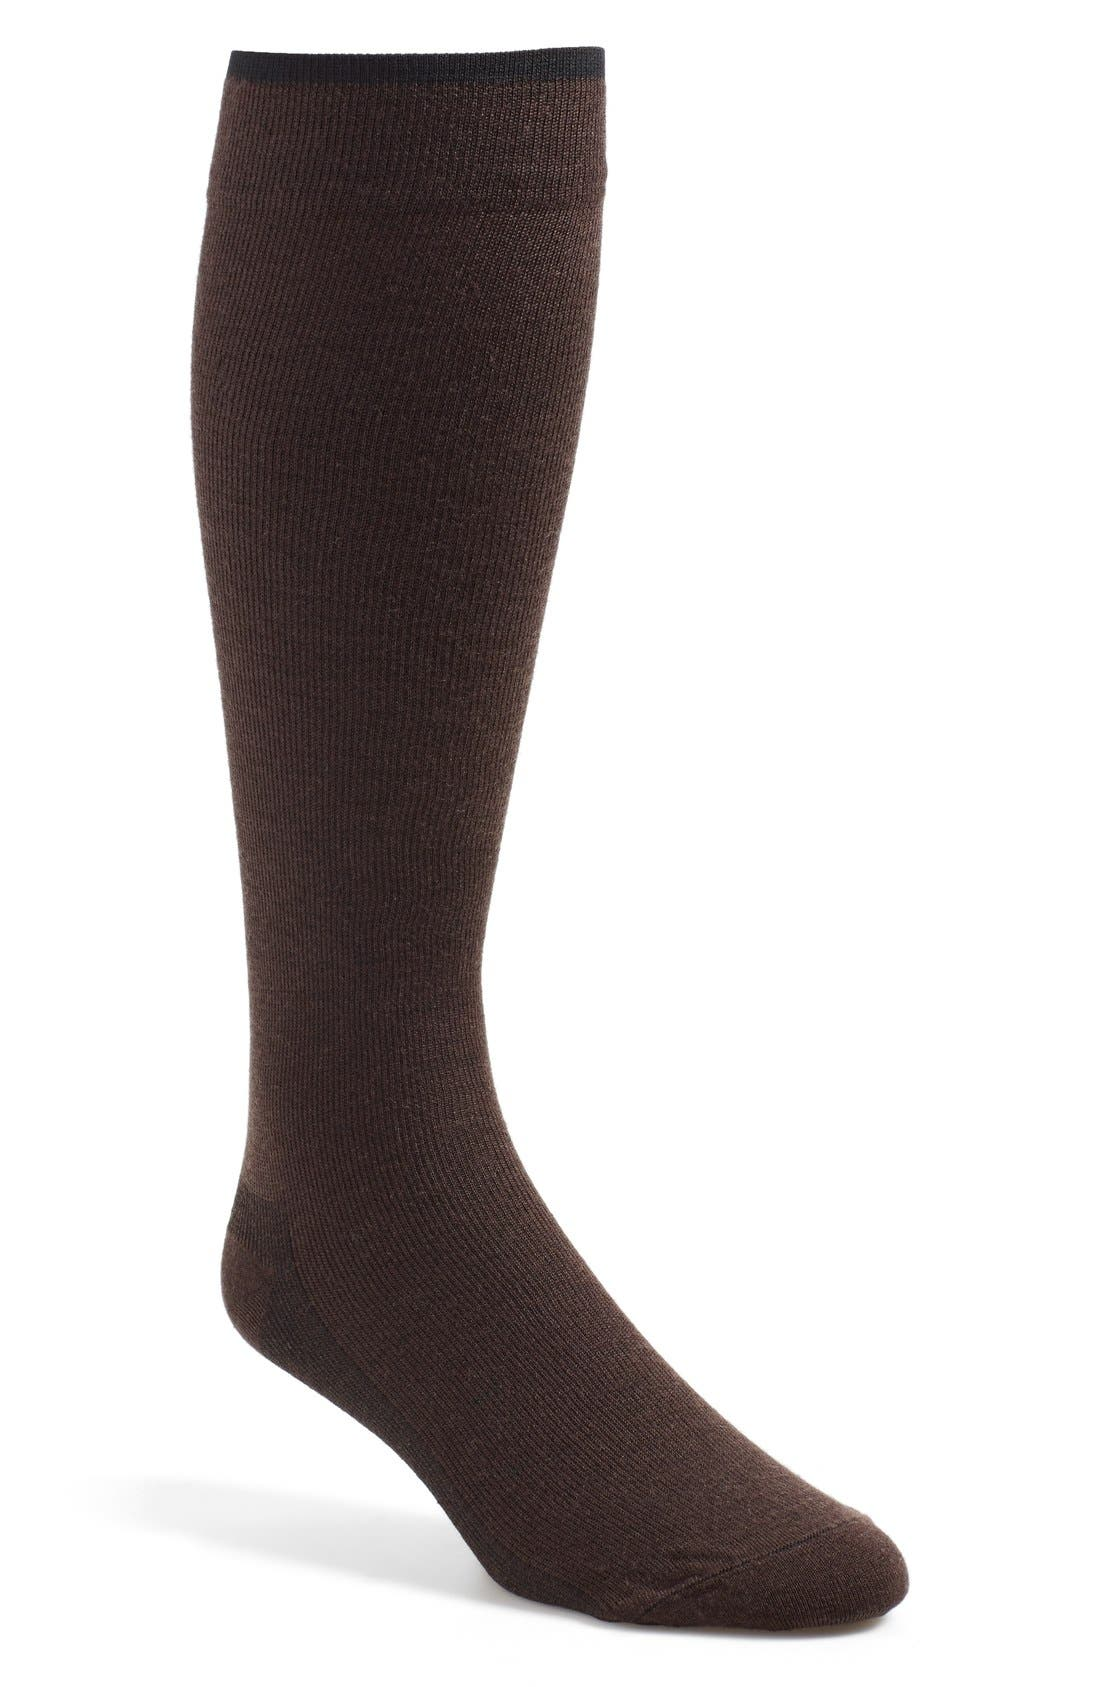 INSIGNIA BY SIGVARIS 'Venturist' Over the Calf Socks, Main, color, BROWN